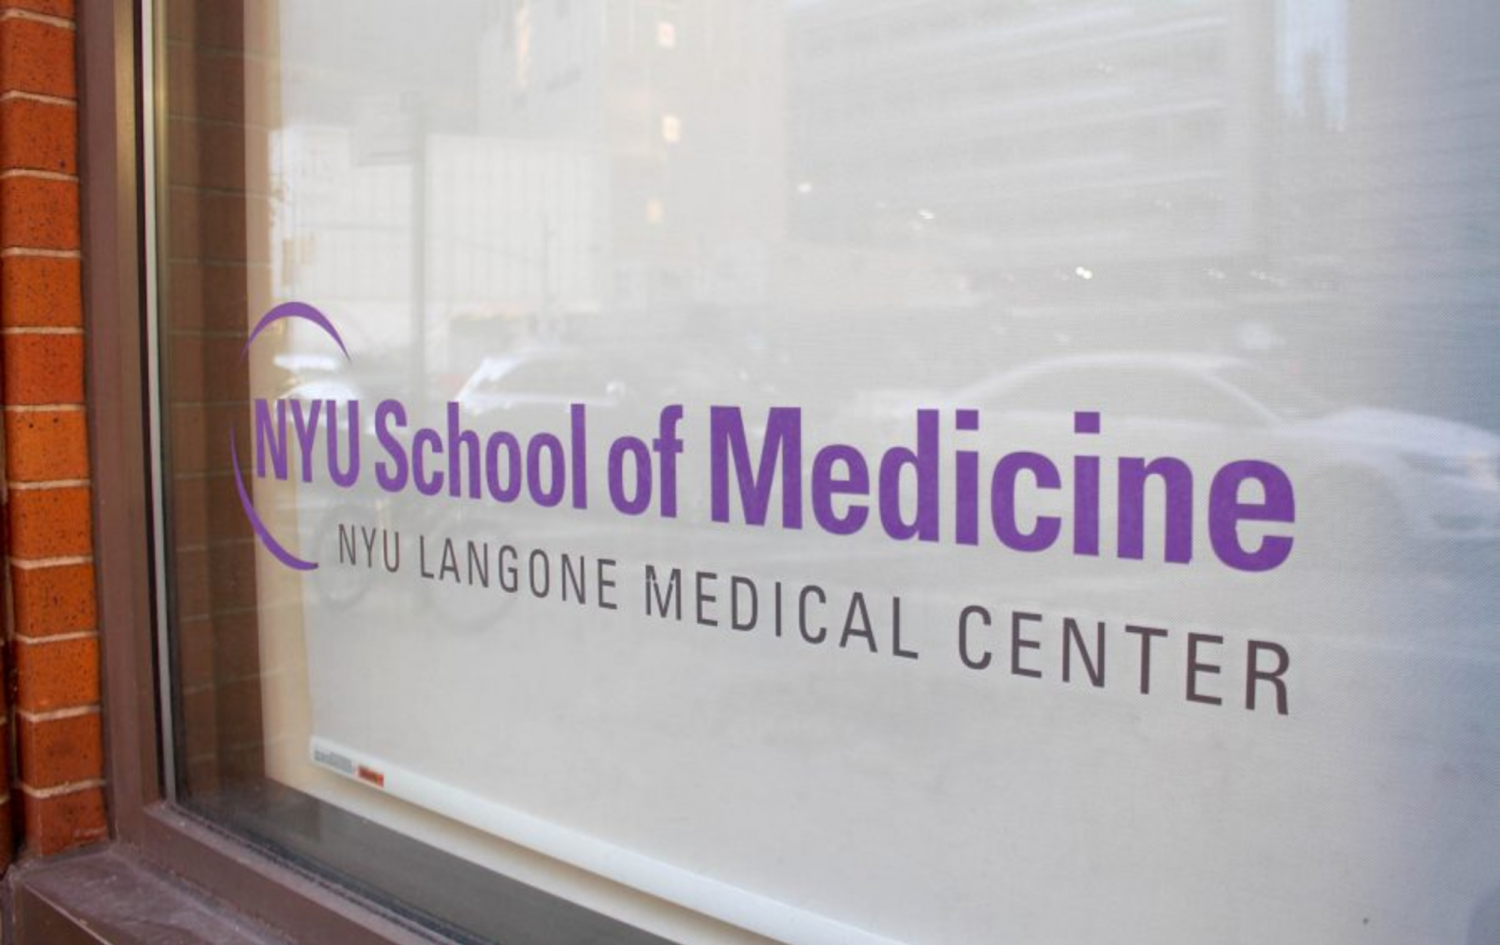 On Aug. 14 NYU Langone Hospital in Brooklyn opened a new center specializing in the diagnosis and treatment of epilepsy.